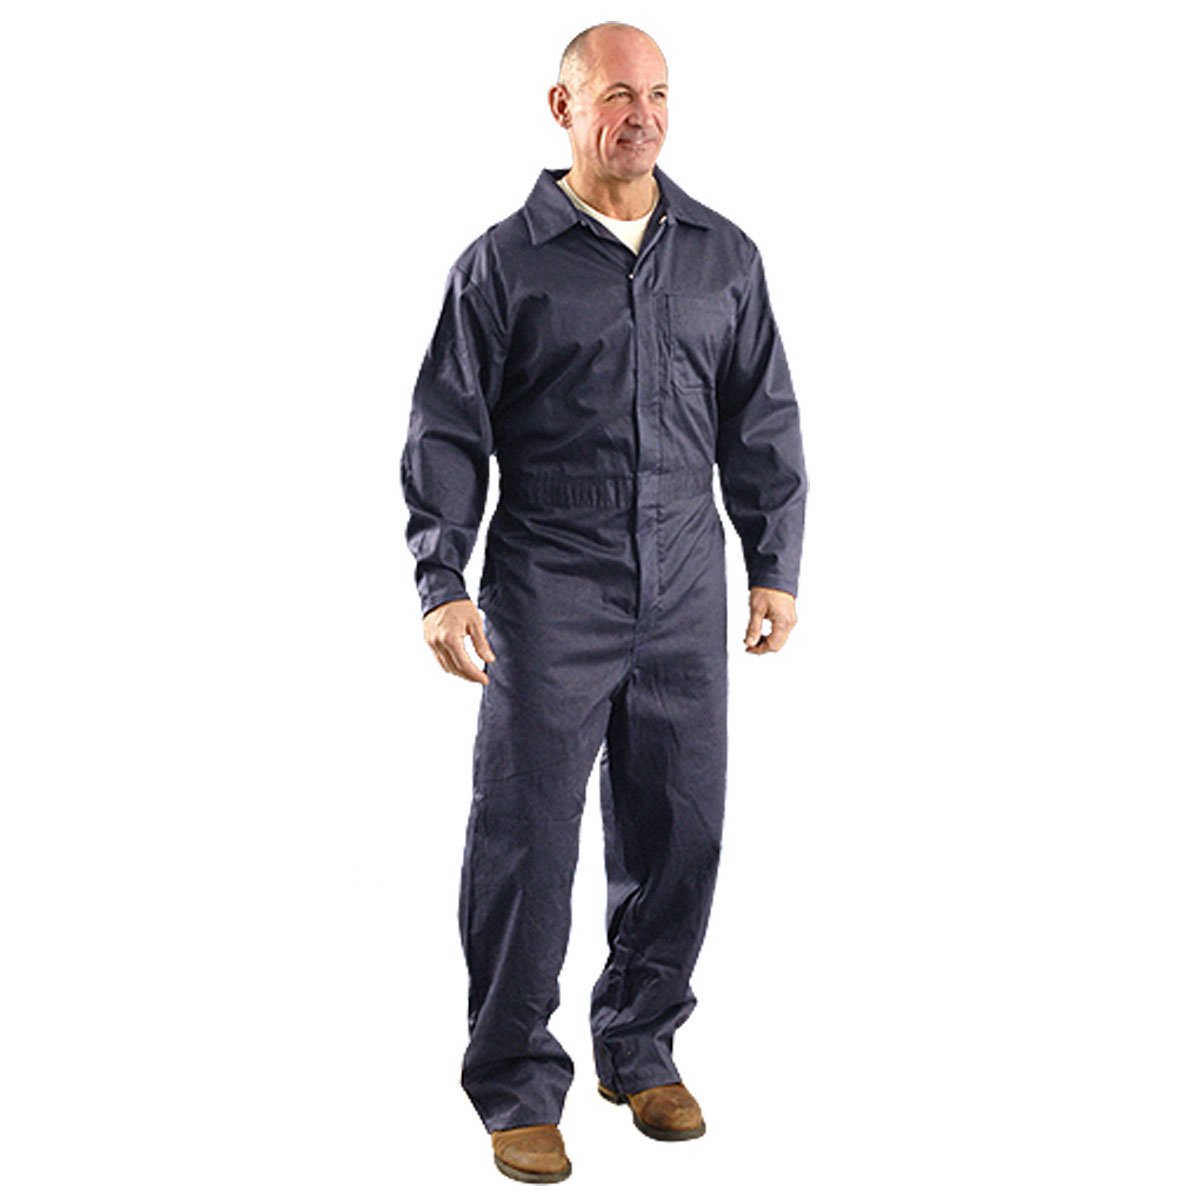 OccuNomix G906NB-3X Premium Nomex Flame Resistant Coverall HRC 1, 6 oz, Navy Blue, 2X-Large